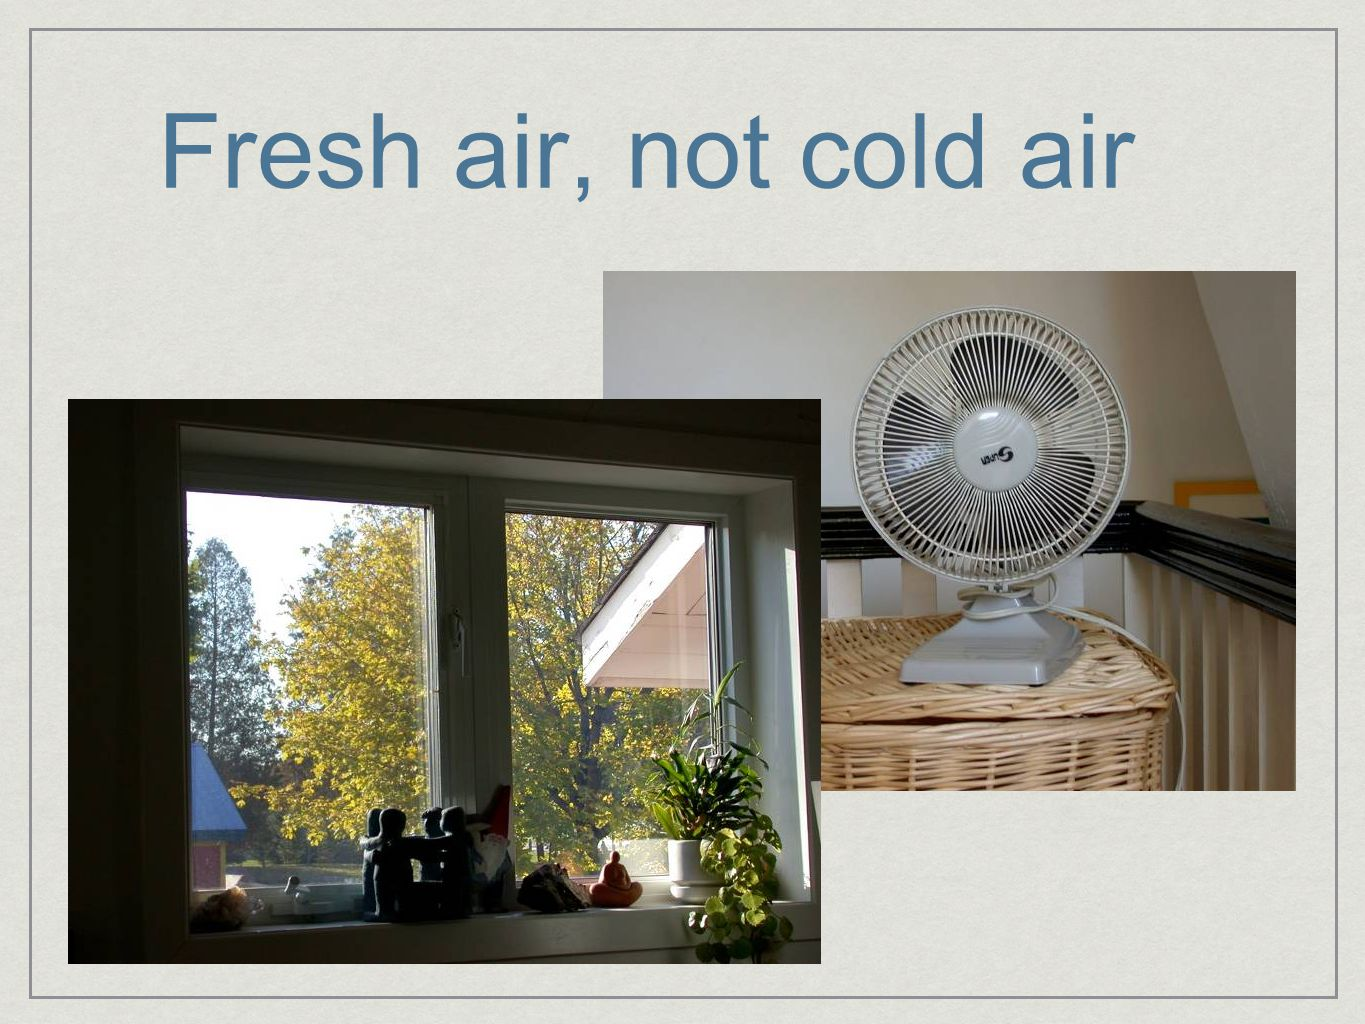 Fresh air, not cold air